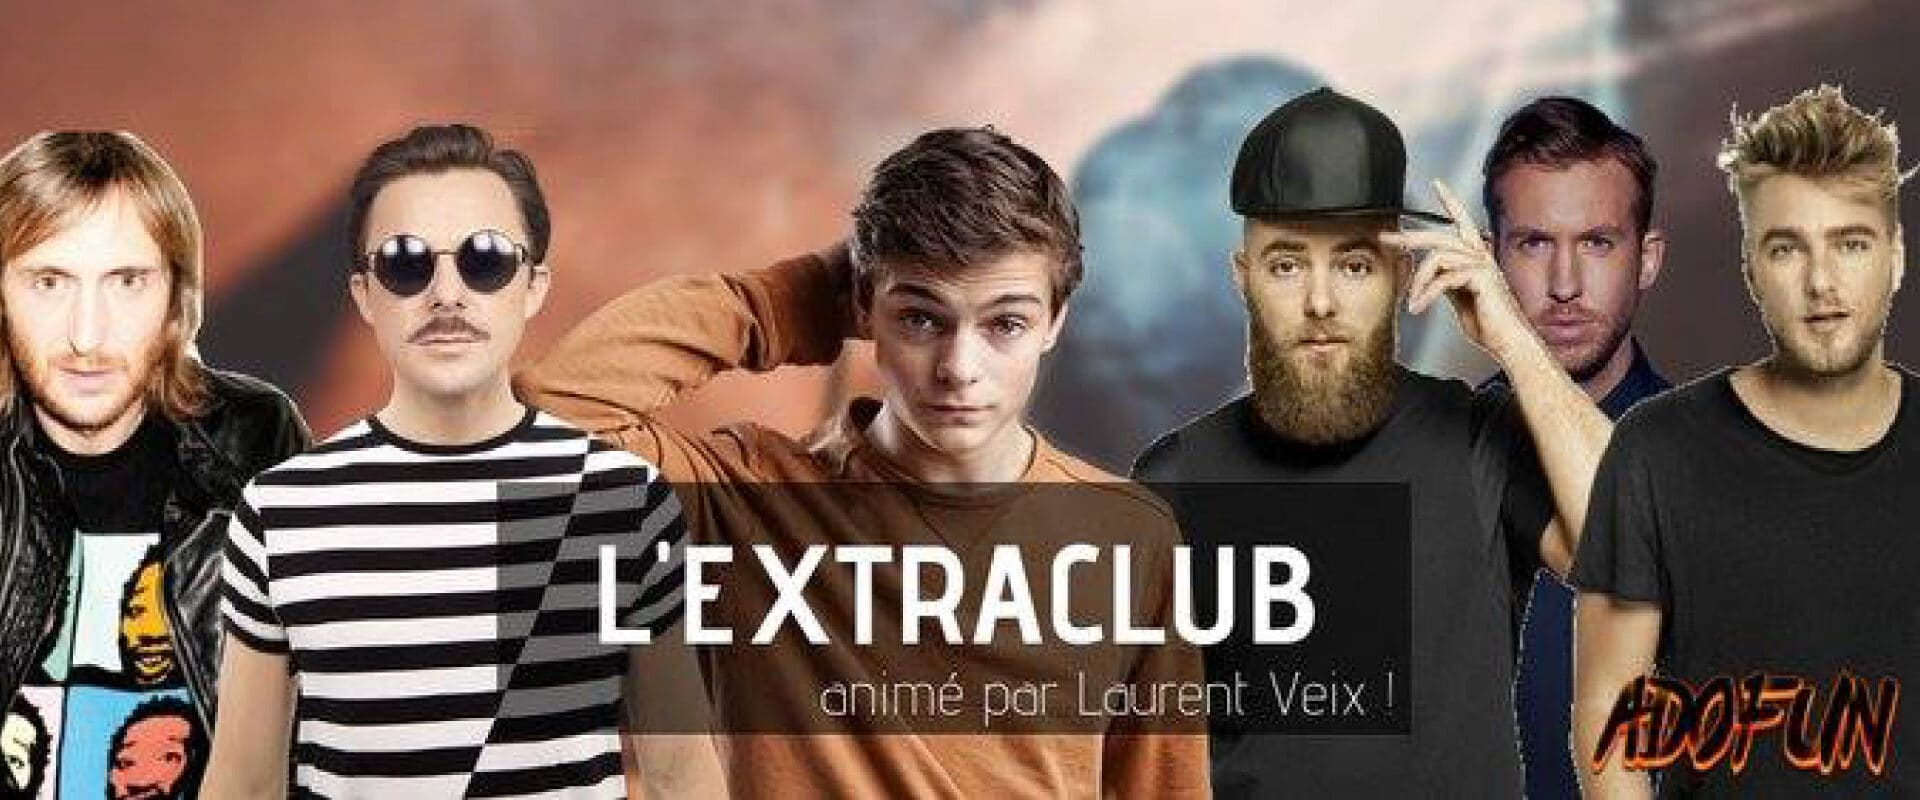 Extraclub - Laurent Veix